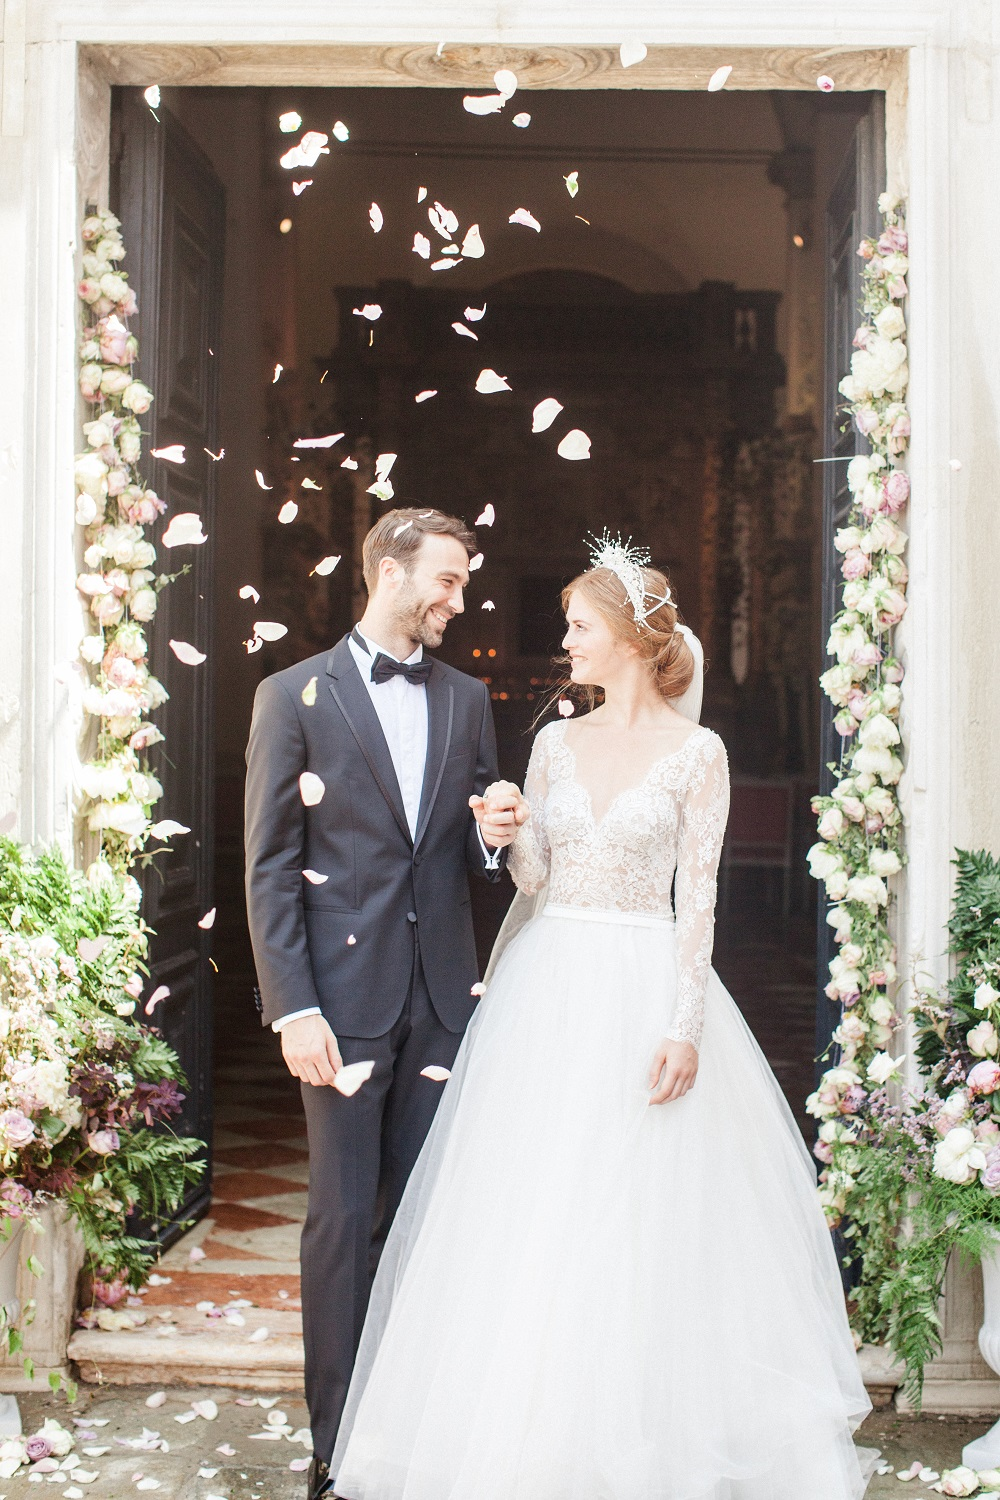 Beloved Wedding Photography: Venice Bridal Inspiration Story With Creative Direction By